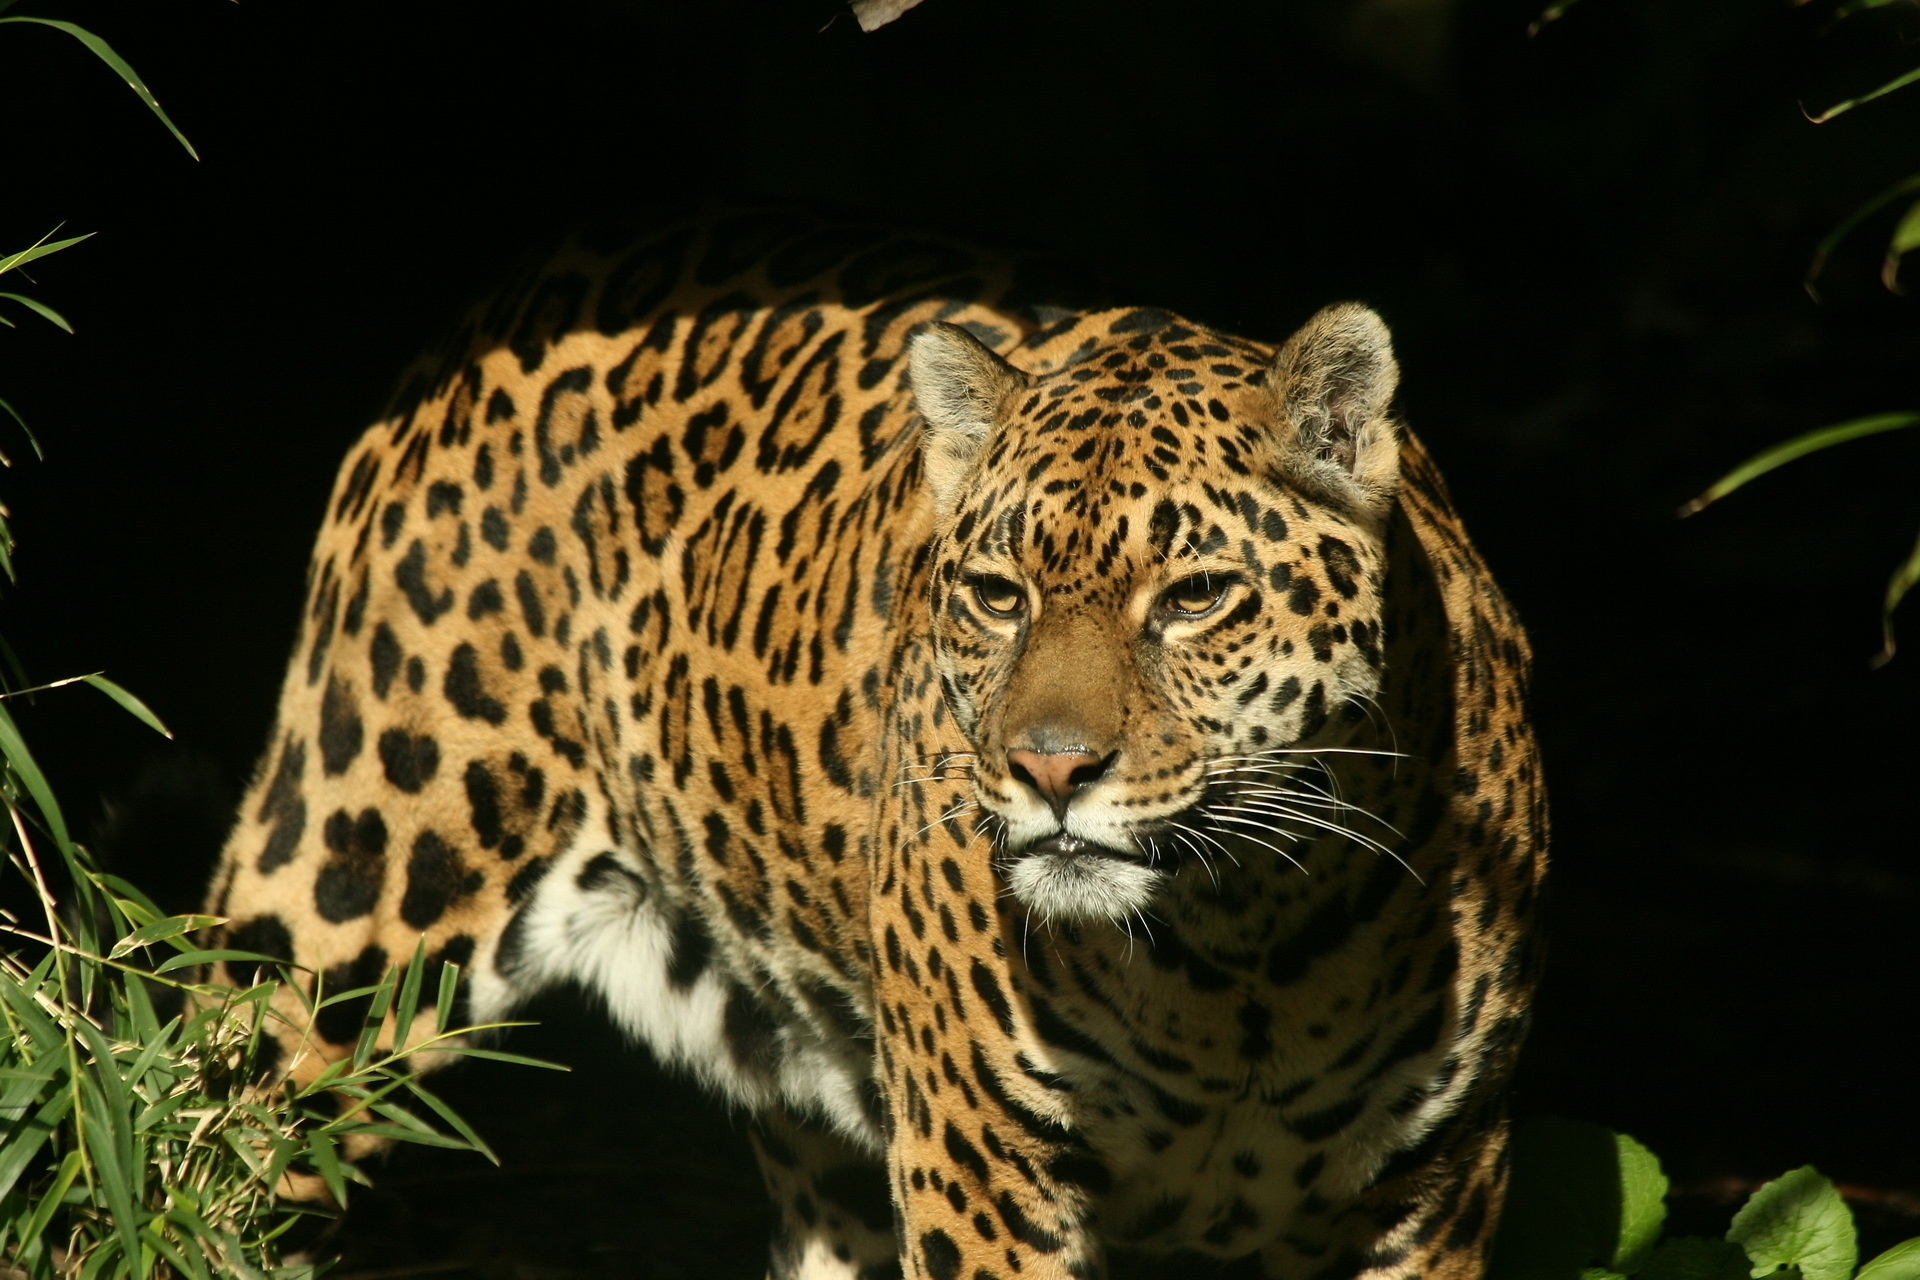 146180 download wallpaper Animals, Jaguar, Grass, Background, Dark, Predator, Sight, Opinion, Watch, To Watch screensavers and pictures for free